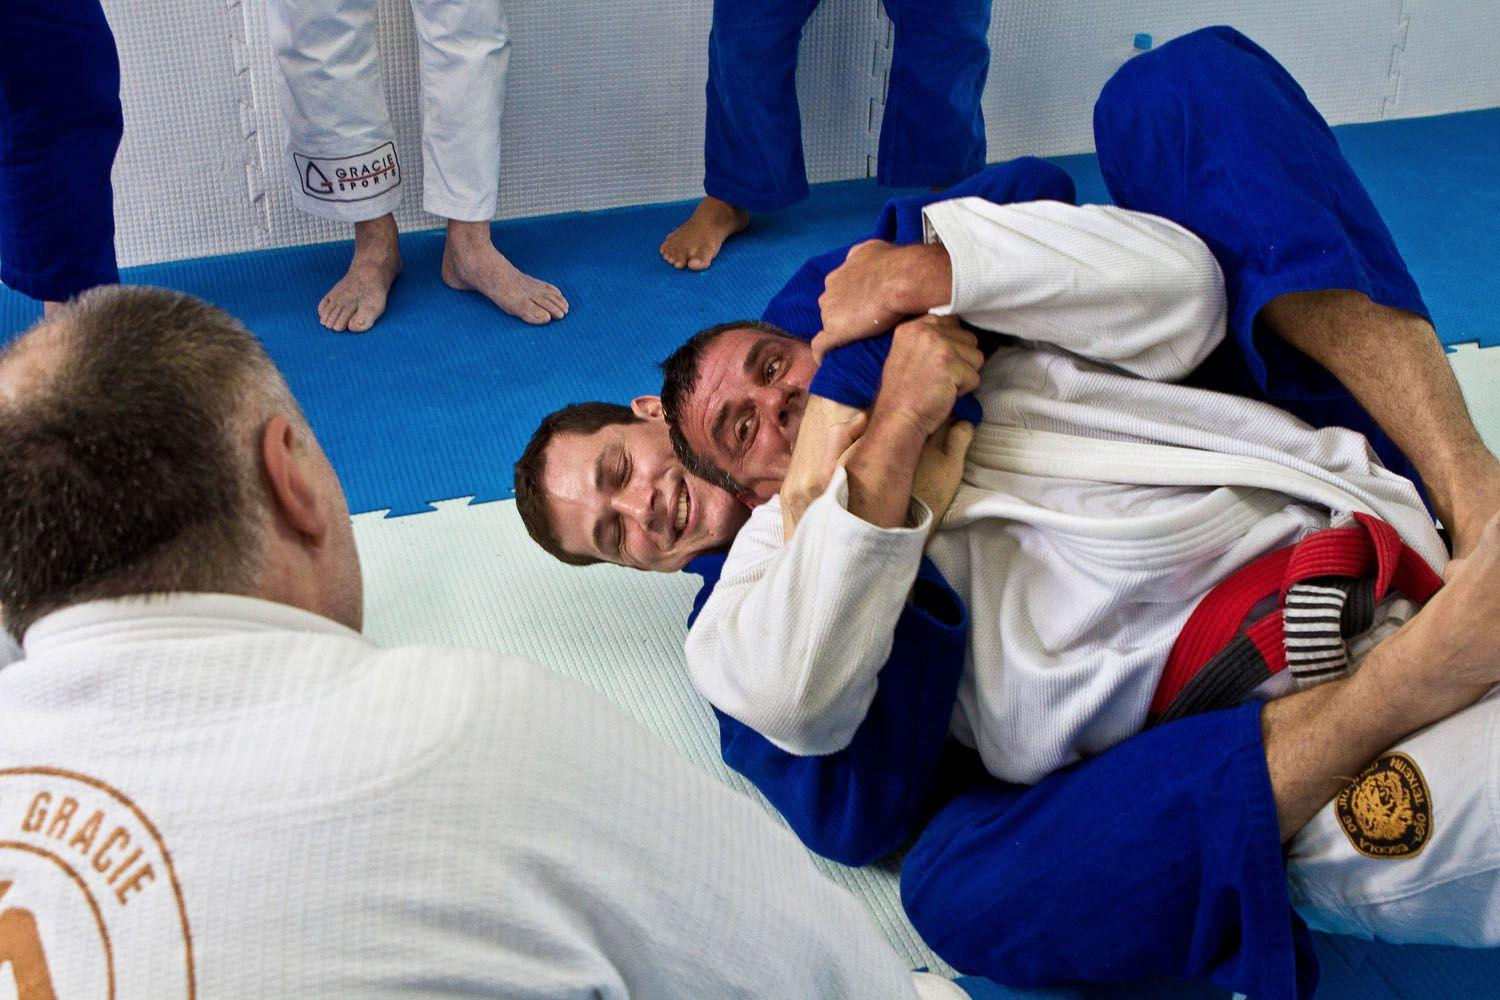 BJJ Seminar: A day of learning with Roger Gracie by @gallerr